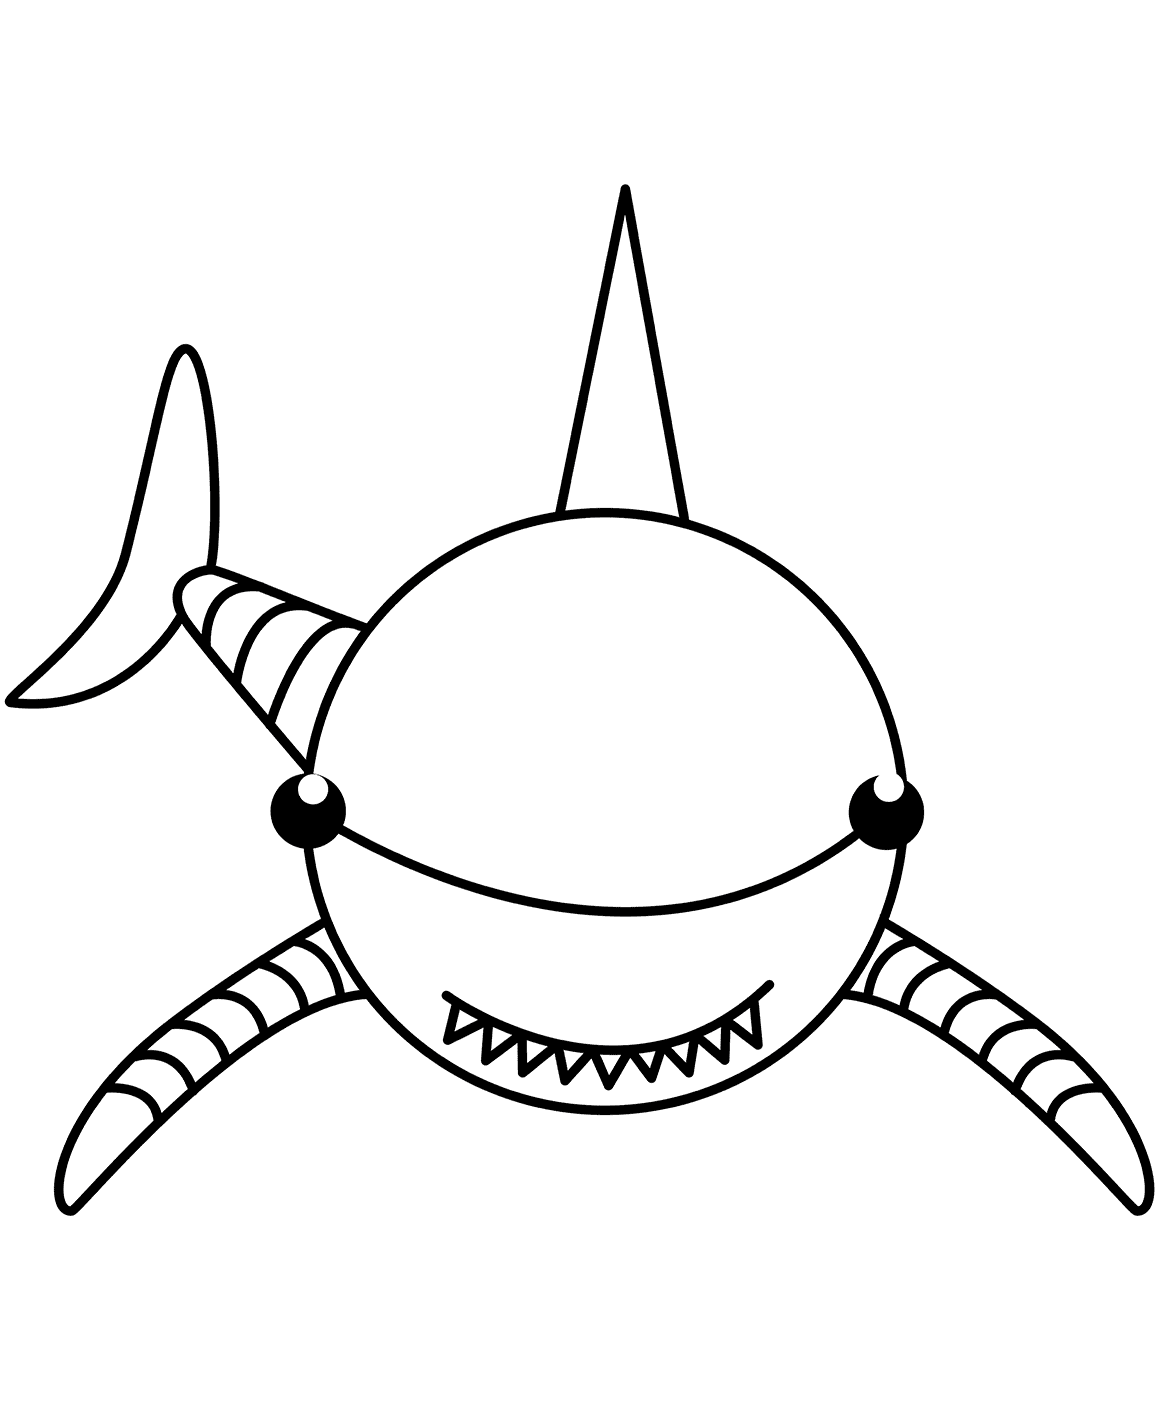 shark coloring pictures to print free printable shark coloring pages for kids shark to pictures print coloring